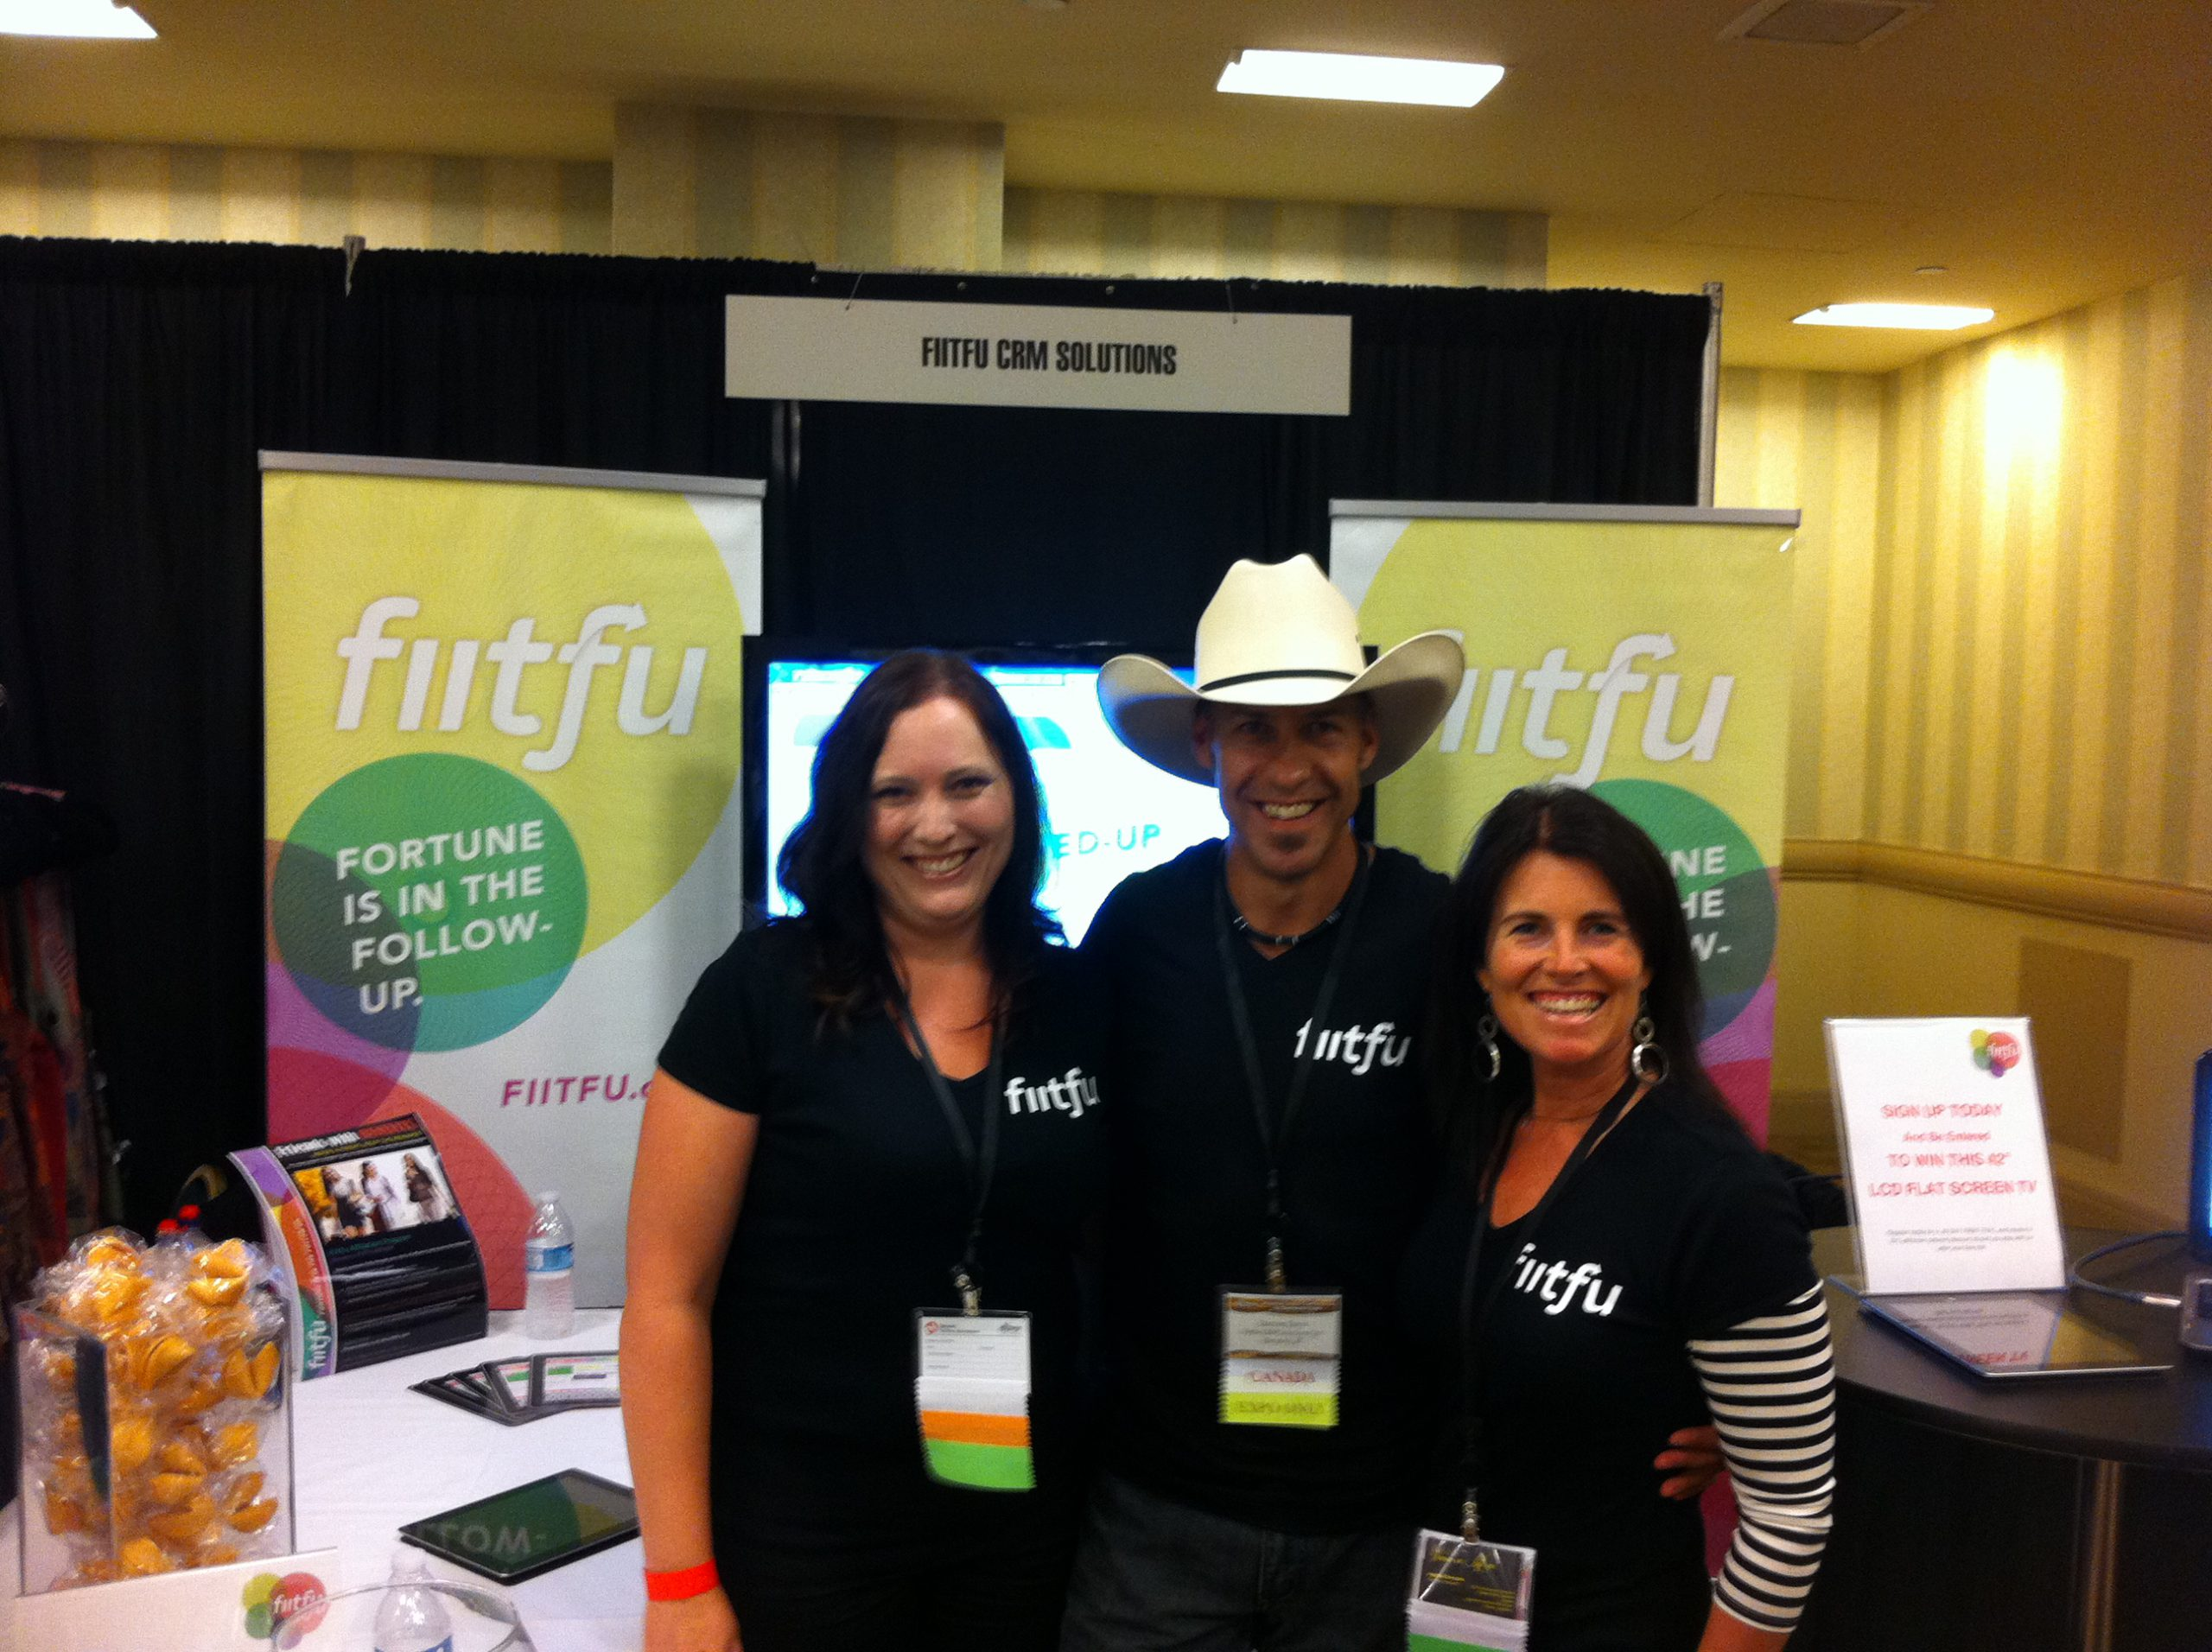 Top 5 Tips On being prepared for a Vendor event